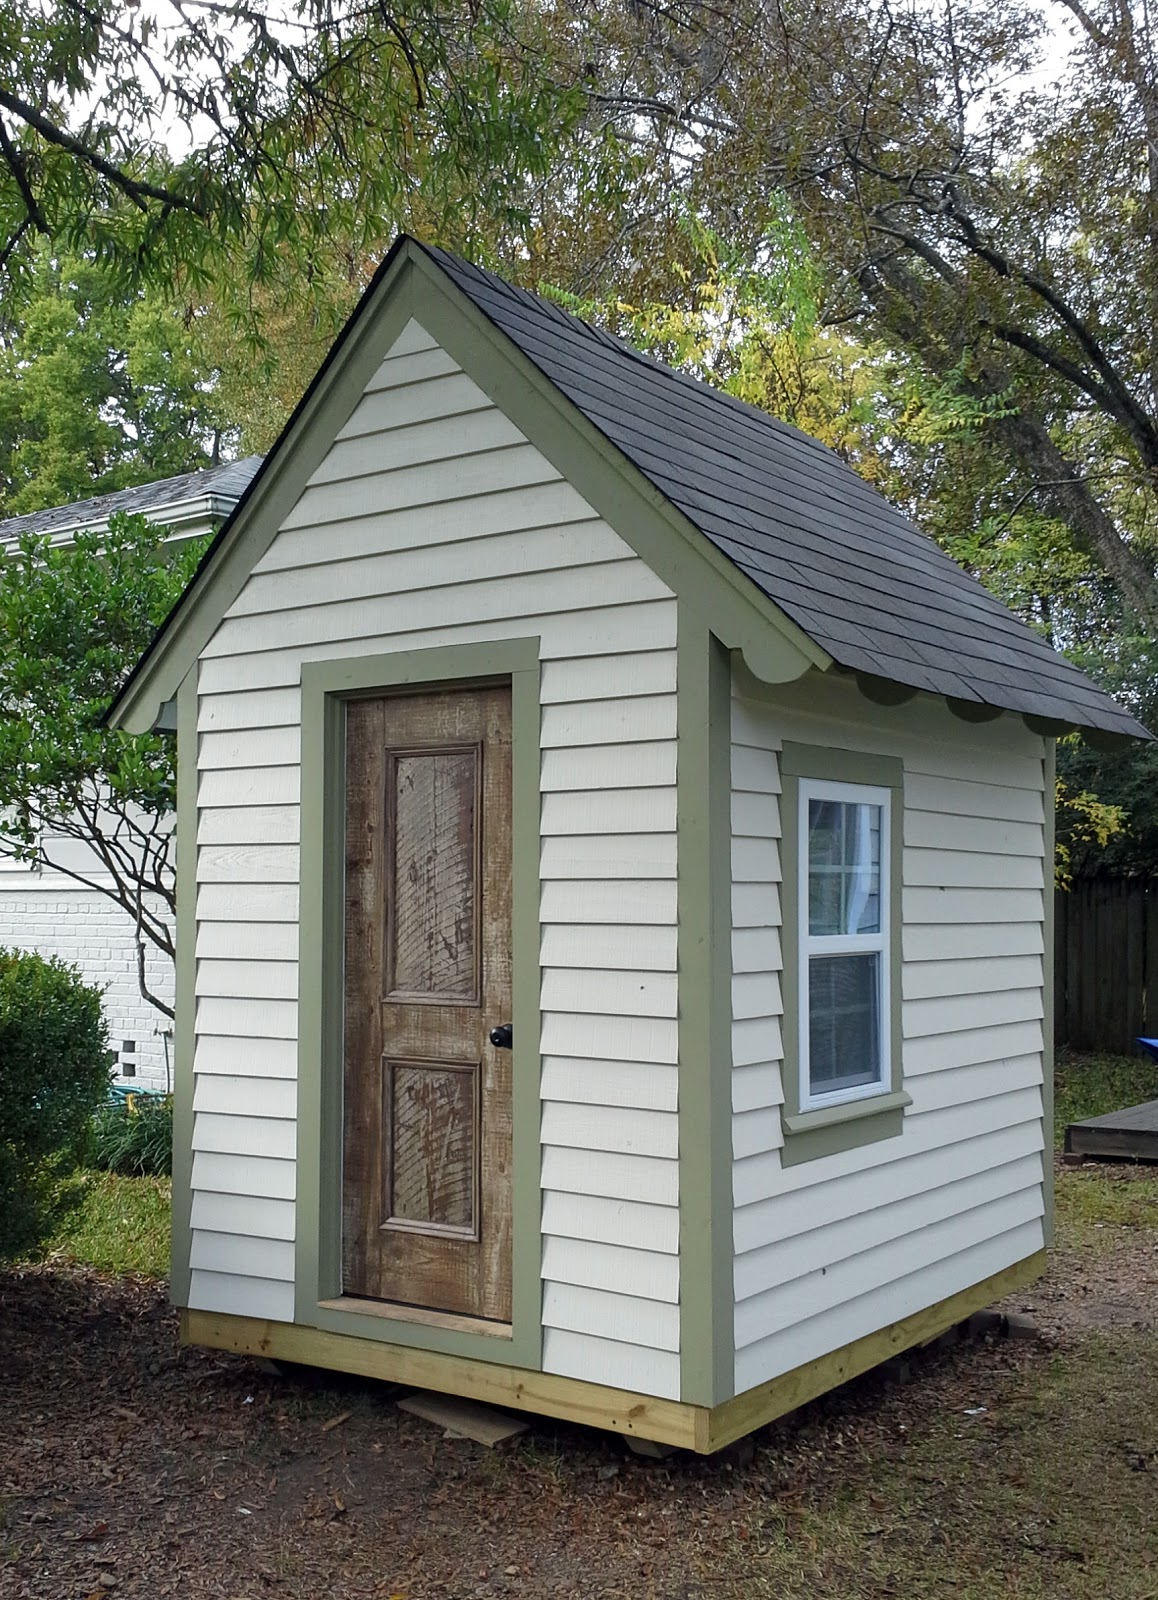 Free Playhouse Plans Of Aplaceimagined Free Playhouse Plans